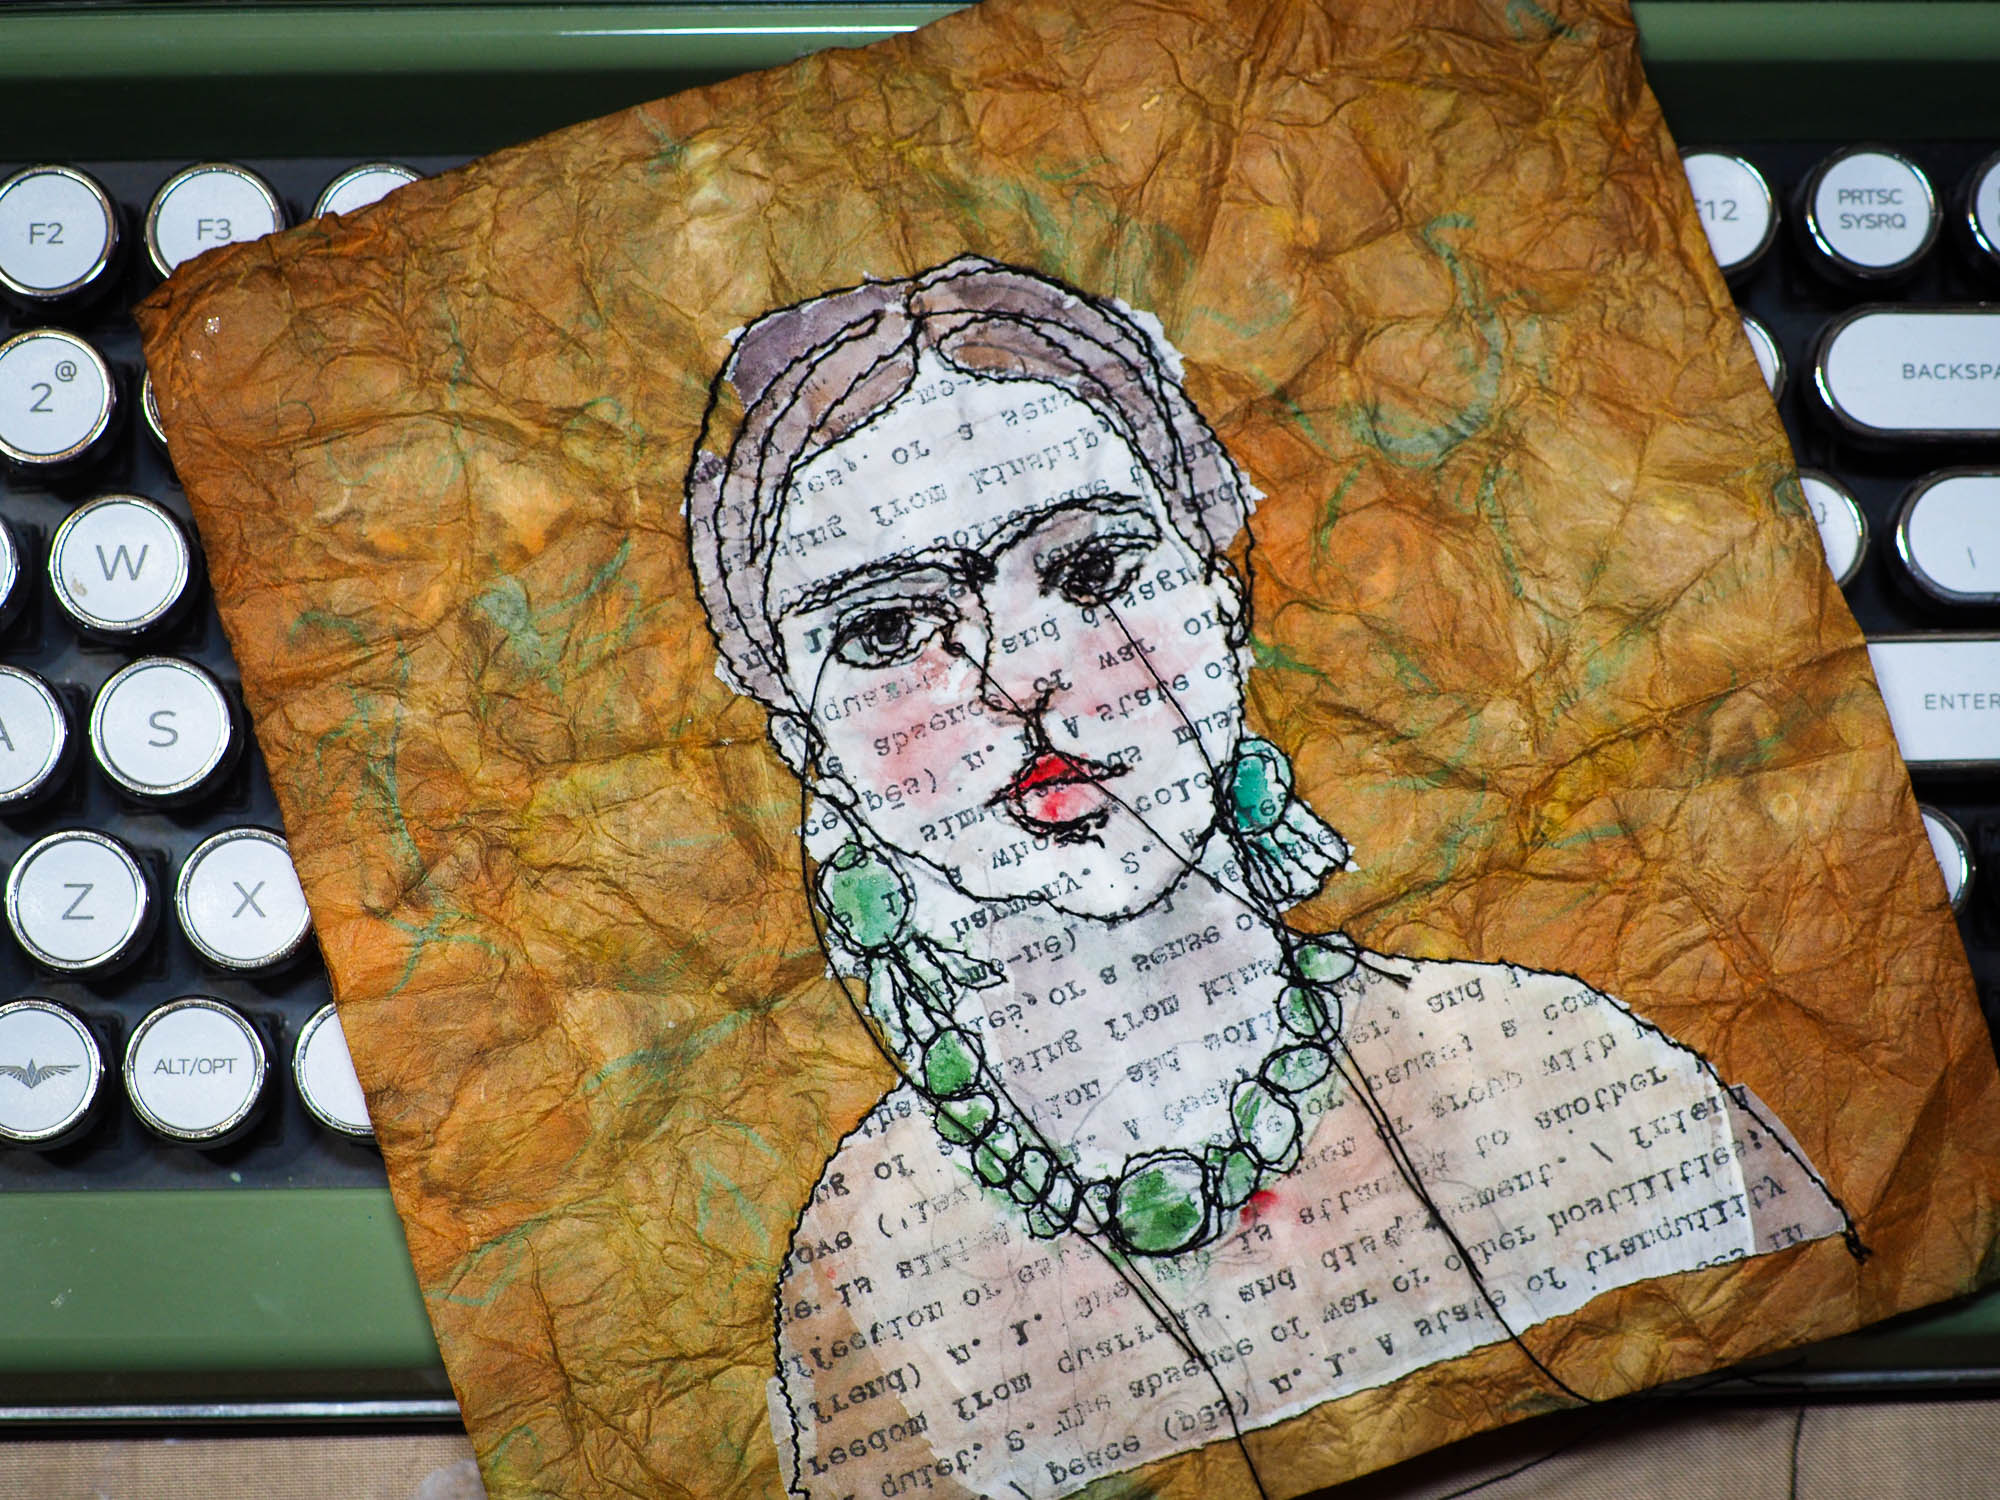 Freehand embroidery painting by Danita Art. Sewing using free motion stitching and embroidery, Danita created a beautiful textile and fabric art original artwork with famous Mexican artist Frida Kahlo featured in a one of a kind portrait.